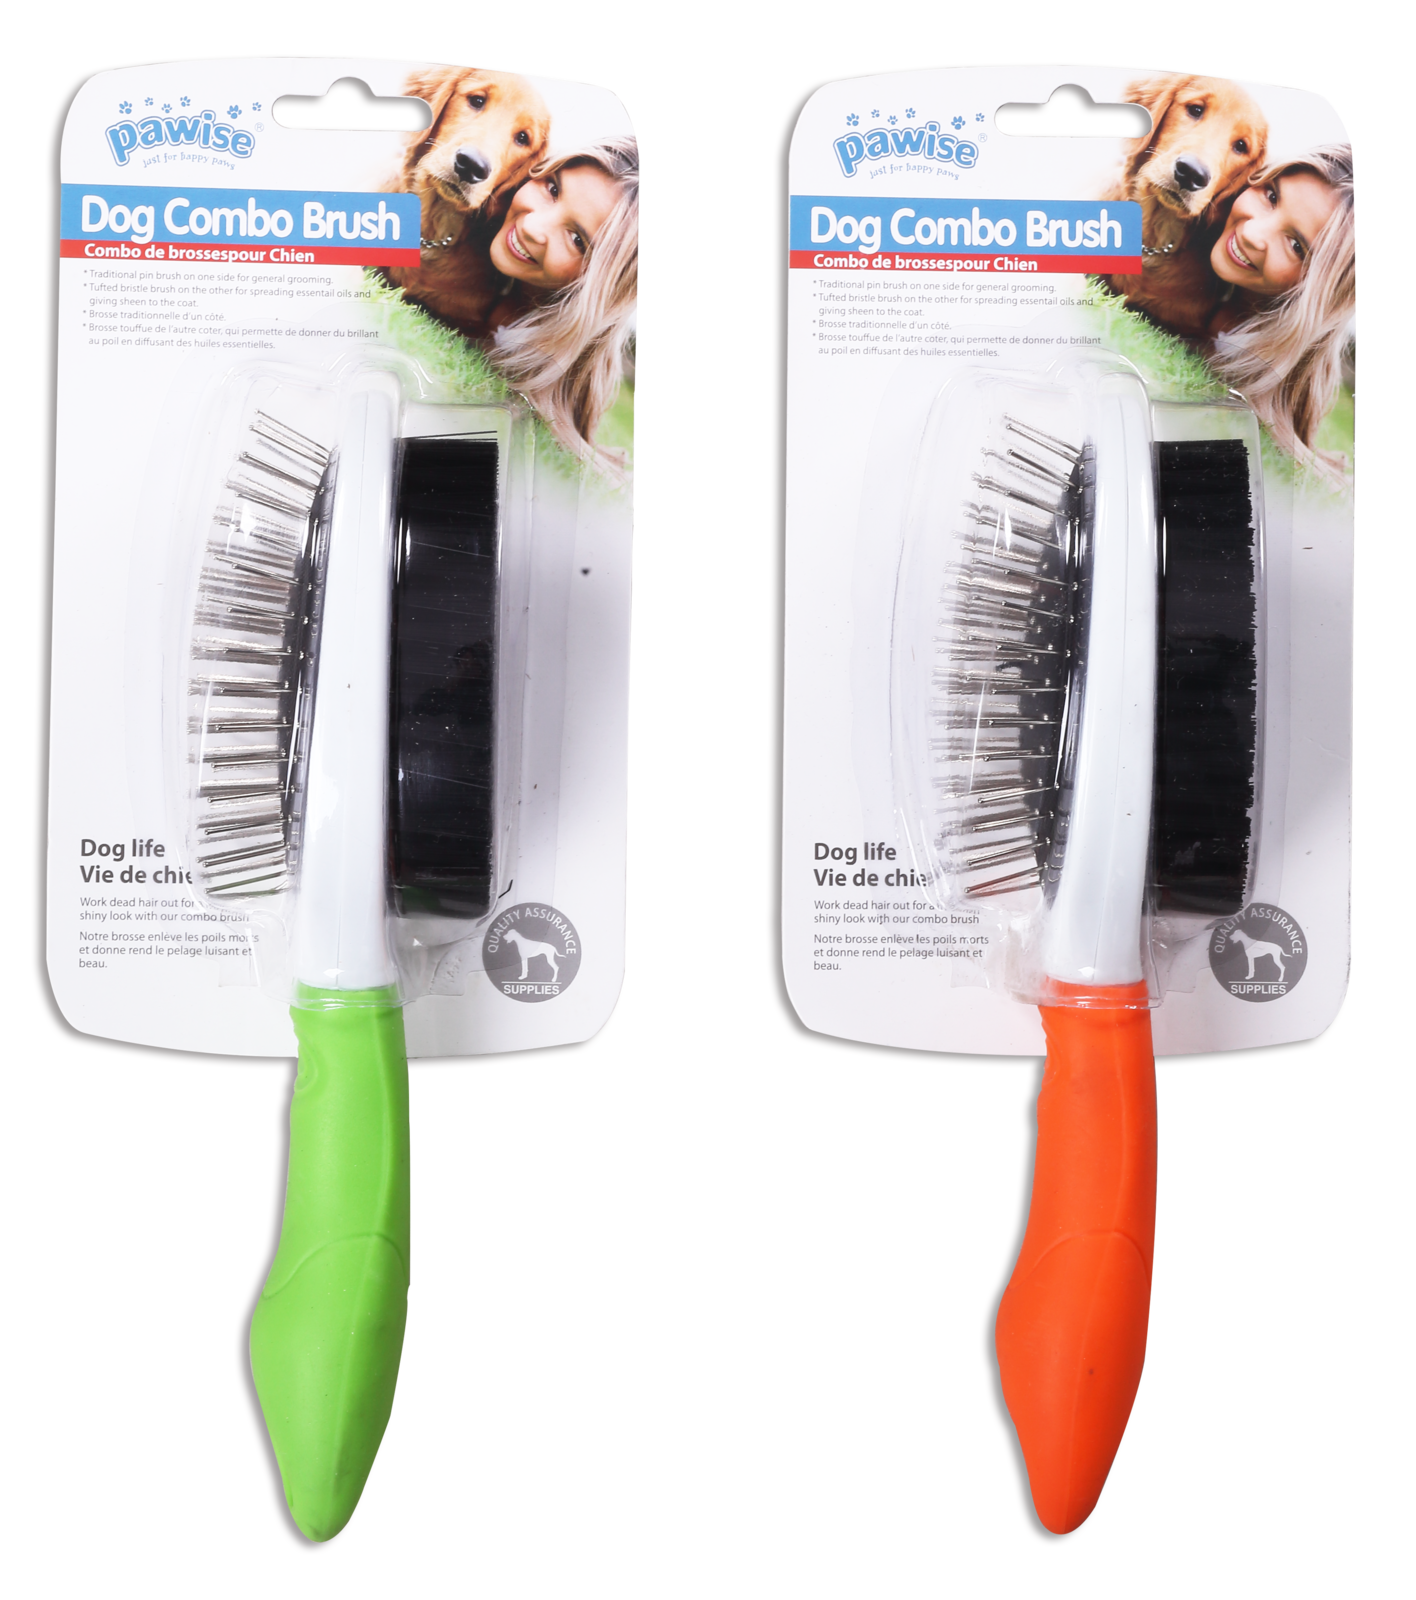 Pawise: Dog Double Brush image